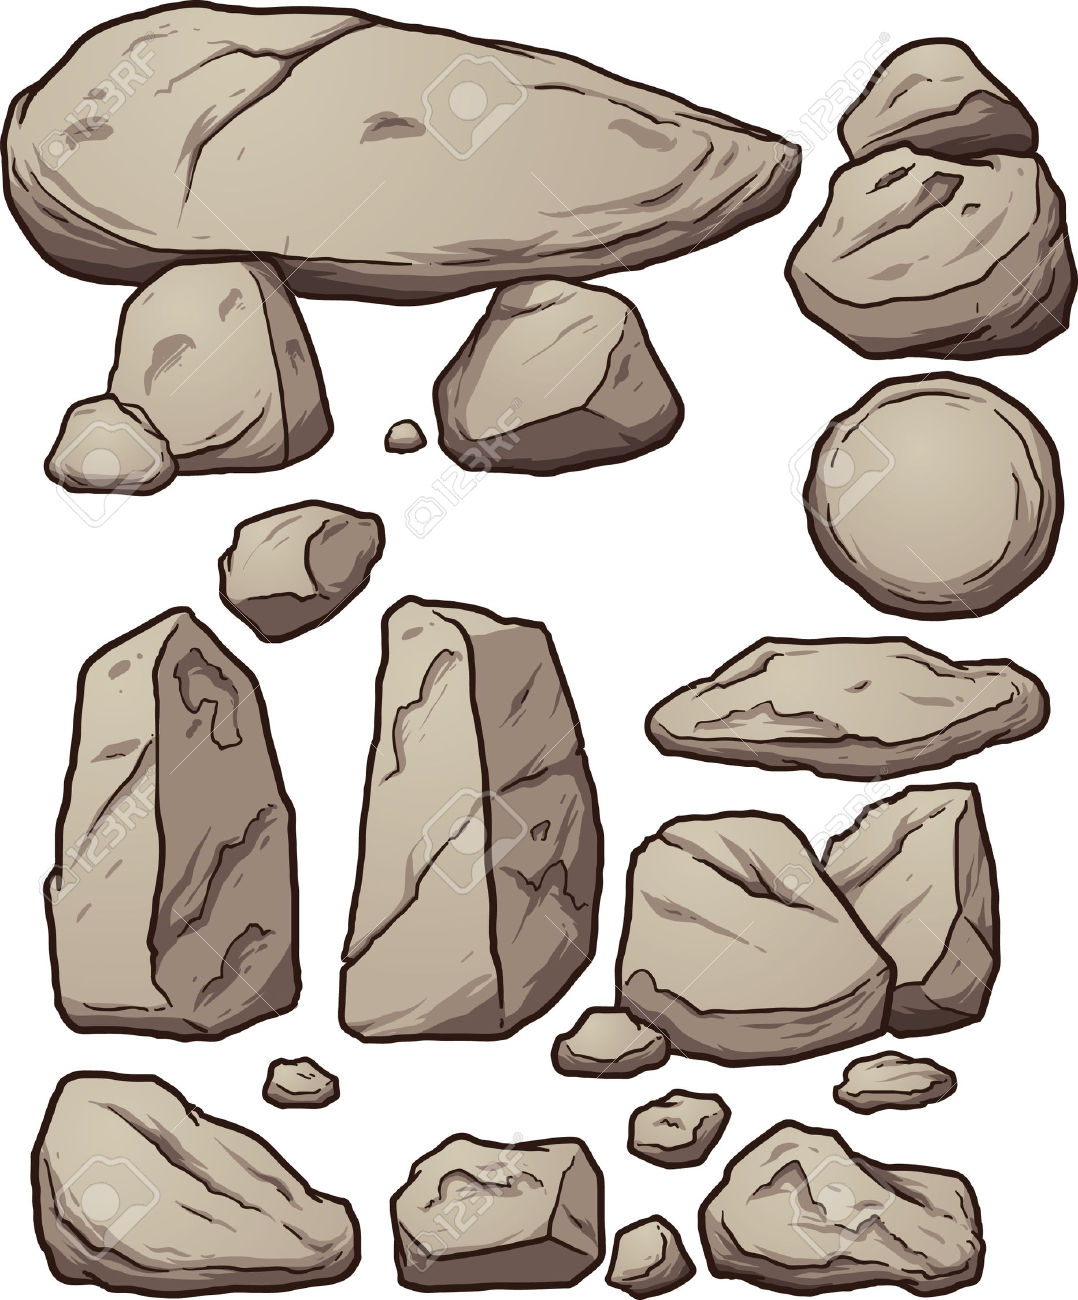 Boulders clipart #17, Download drawings